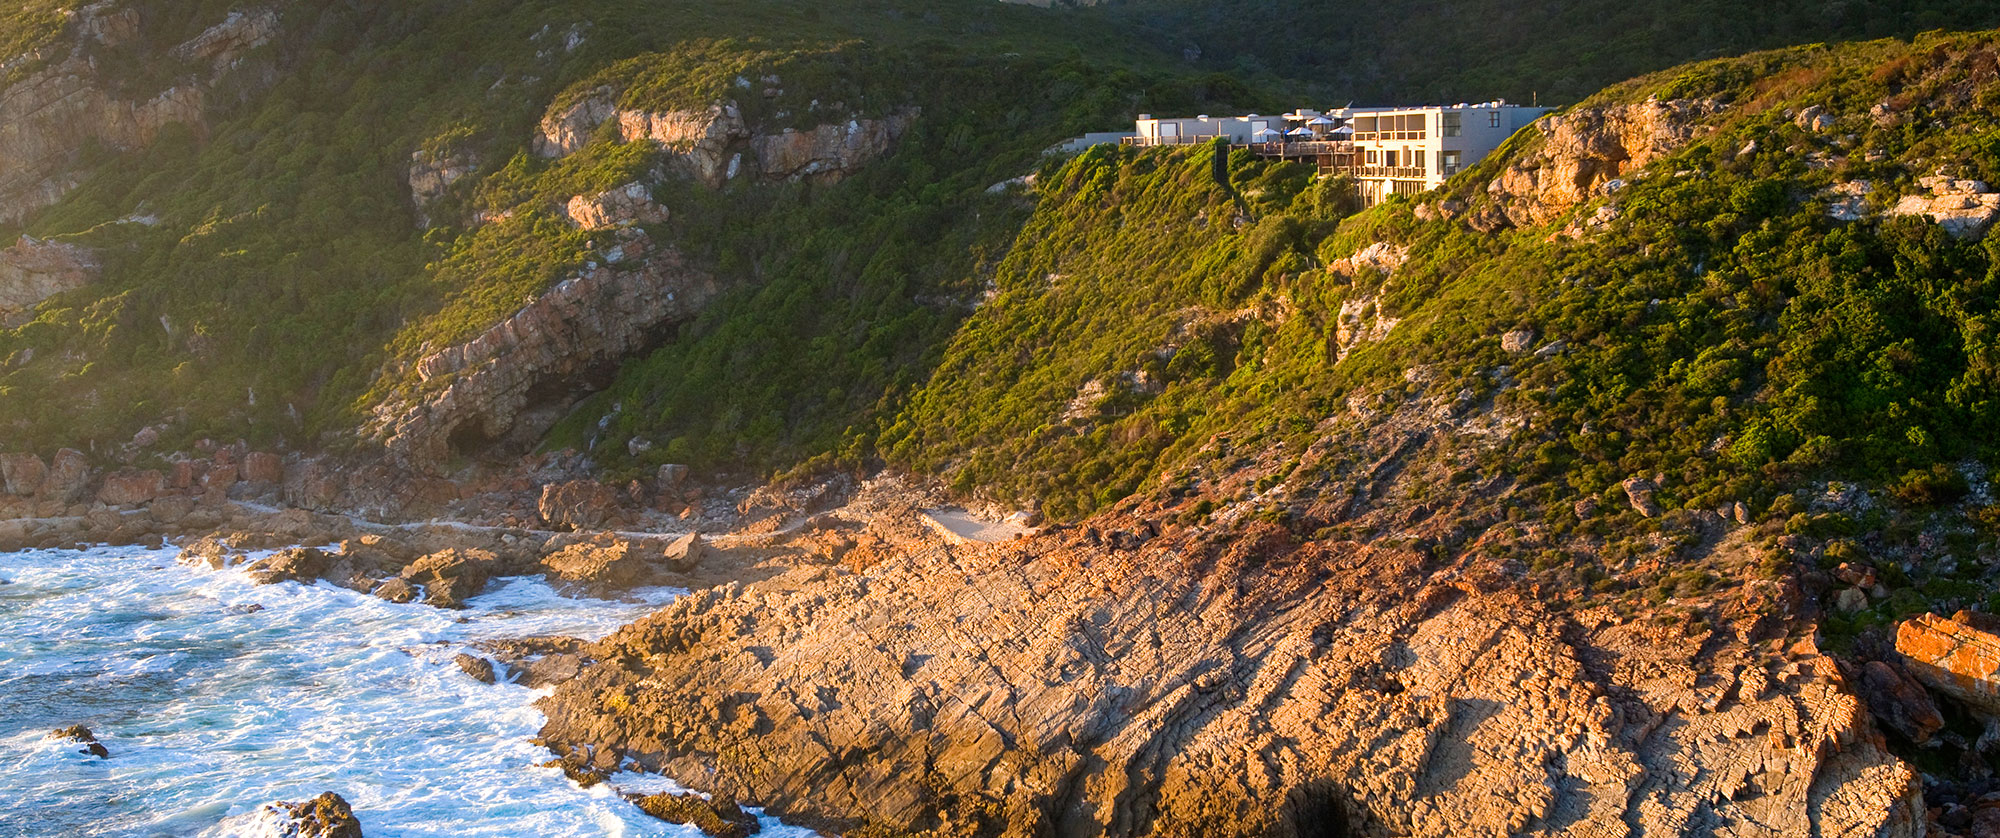 South Africa Family Safari Package - Plettenberg Park Hotel